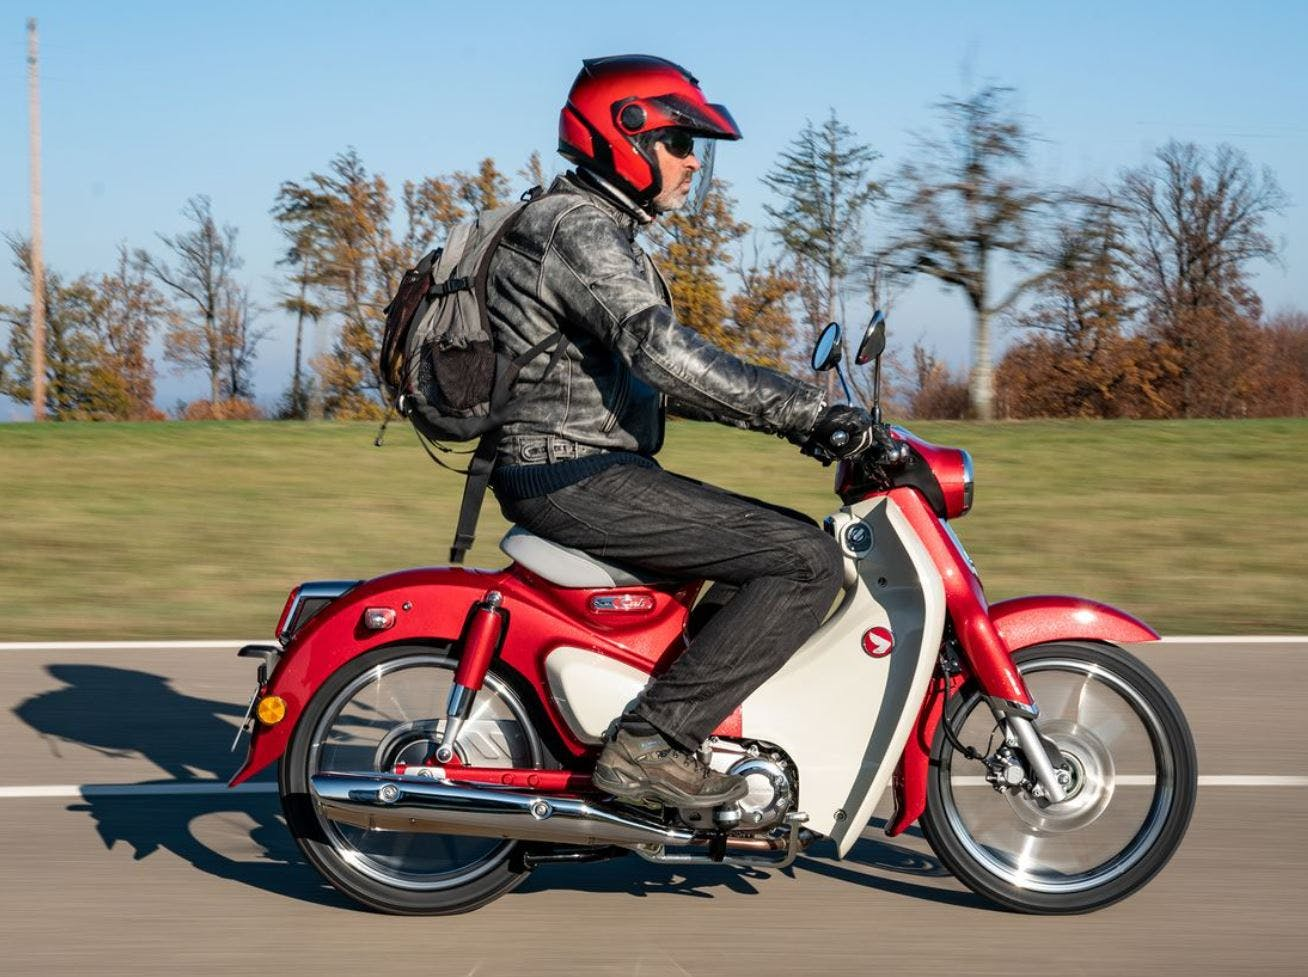 Honda C125 Super Cub in Pearl Nebula Red colour being ridden on the road